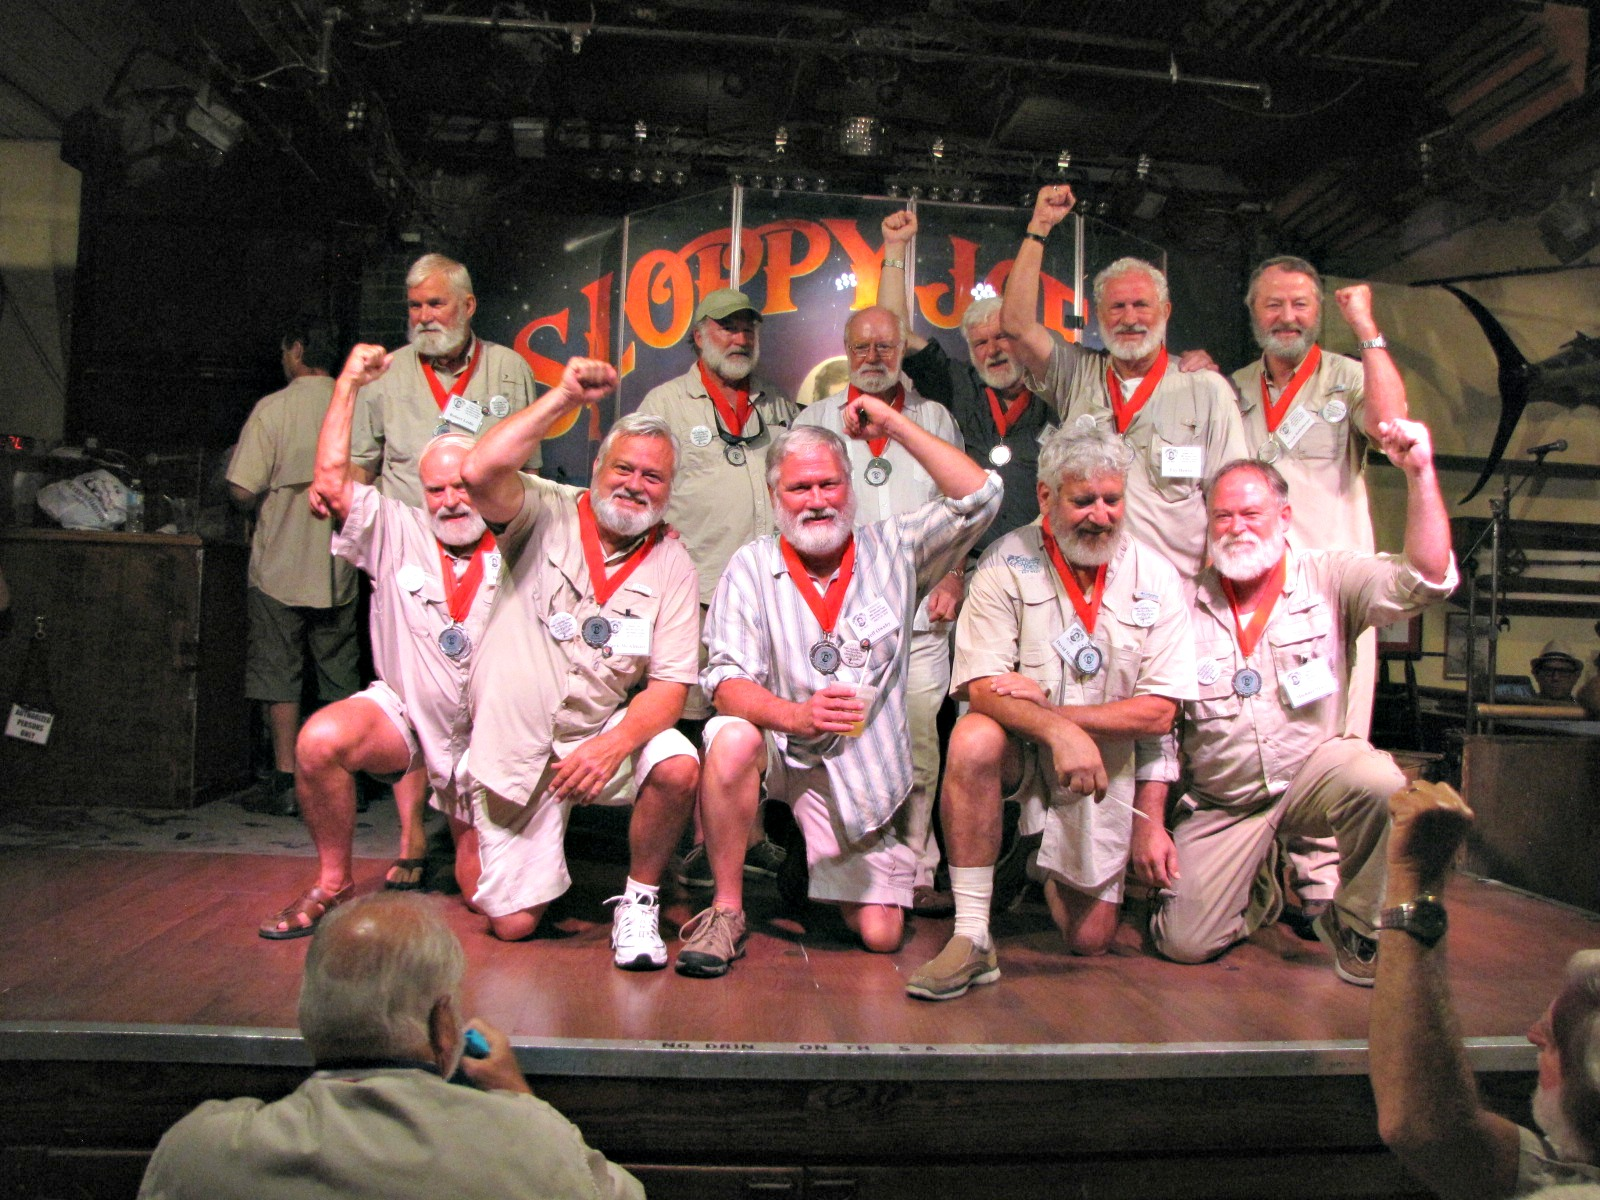 Hemingway look-alike contestants gathered on the stage at Sloppy Joe's Bar in Key West during Hemingway Days